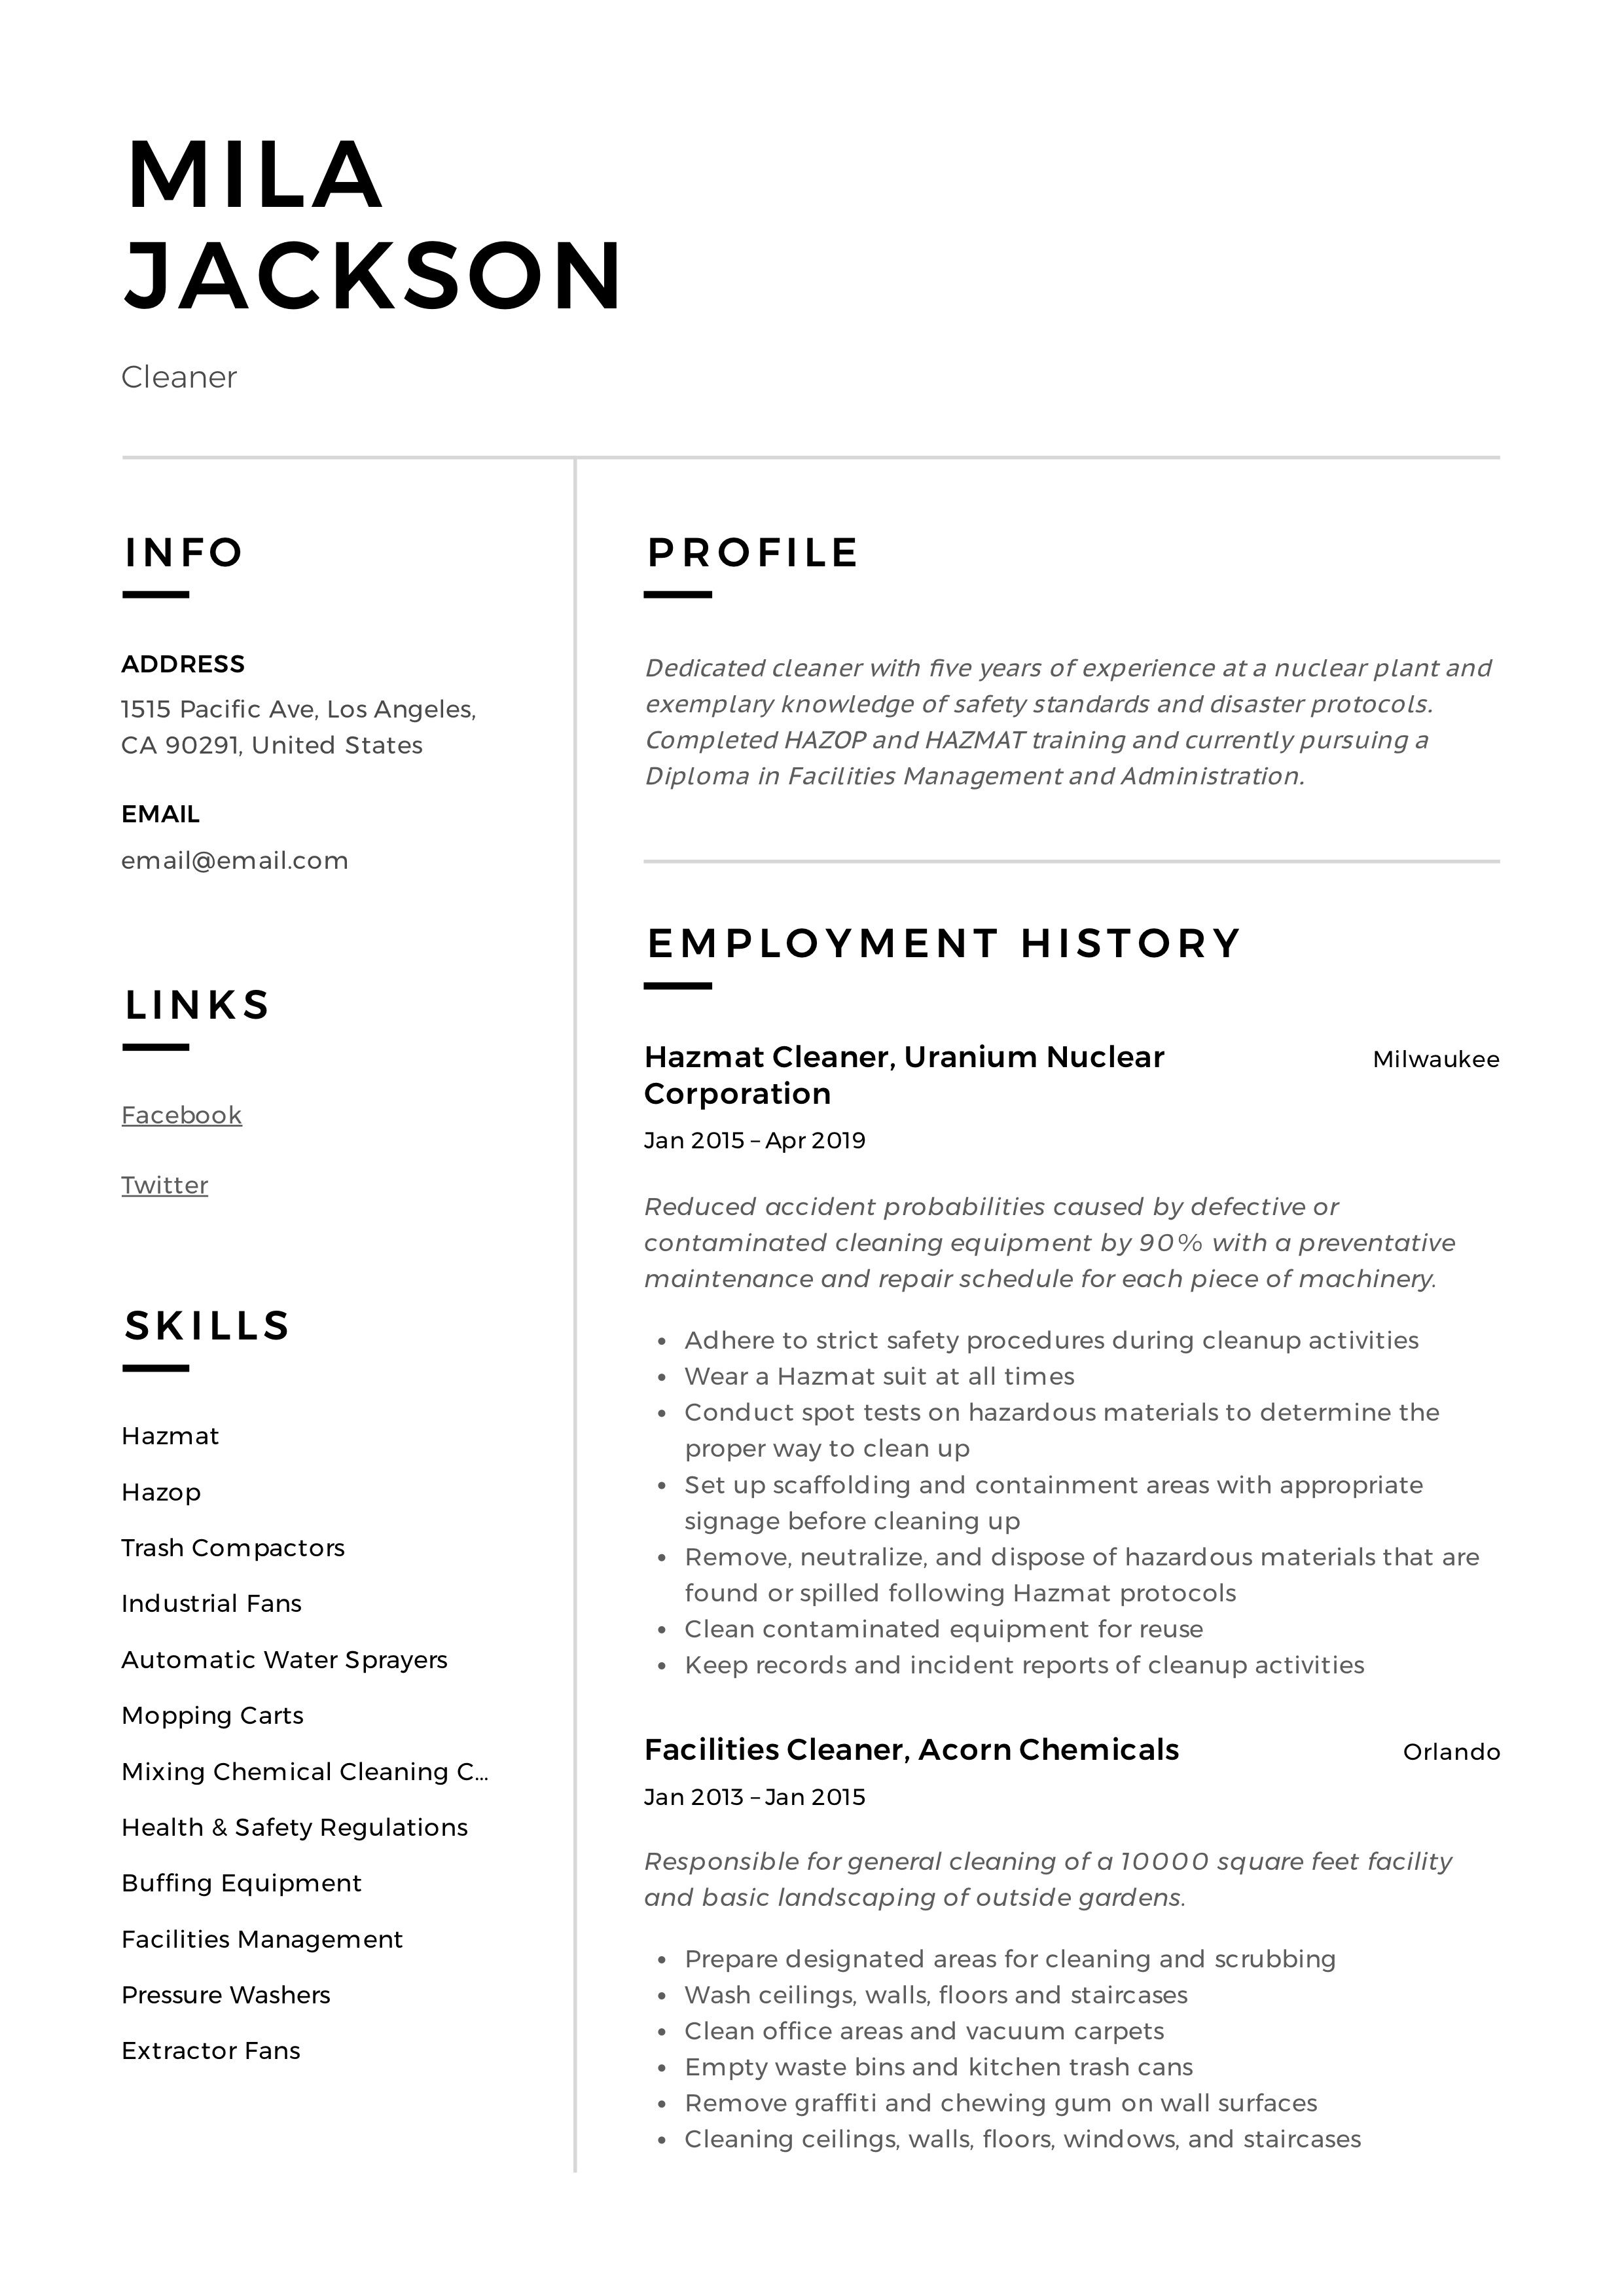 Cleaner Resume Sample Professional Resume Examples Resume Examples Job Resume Template